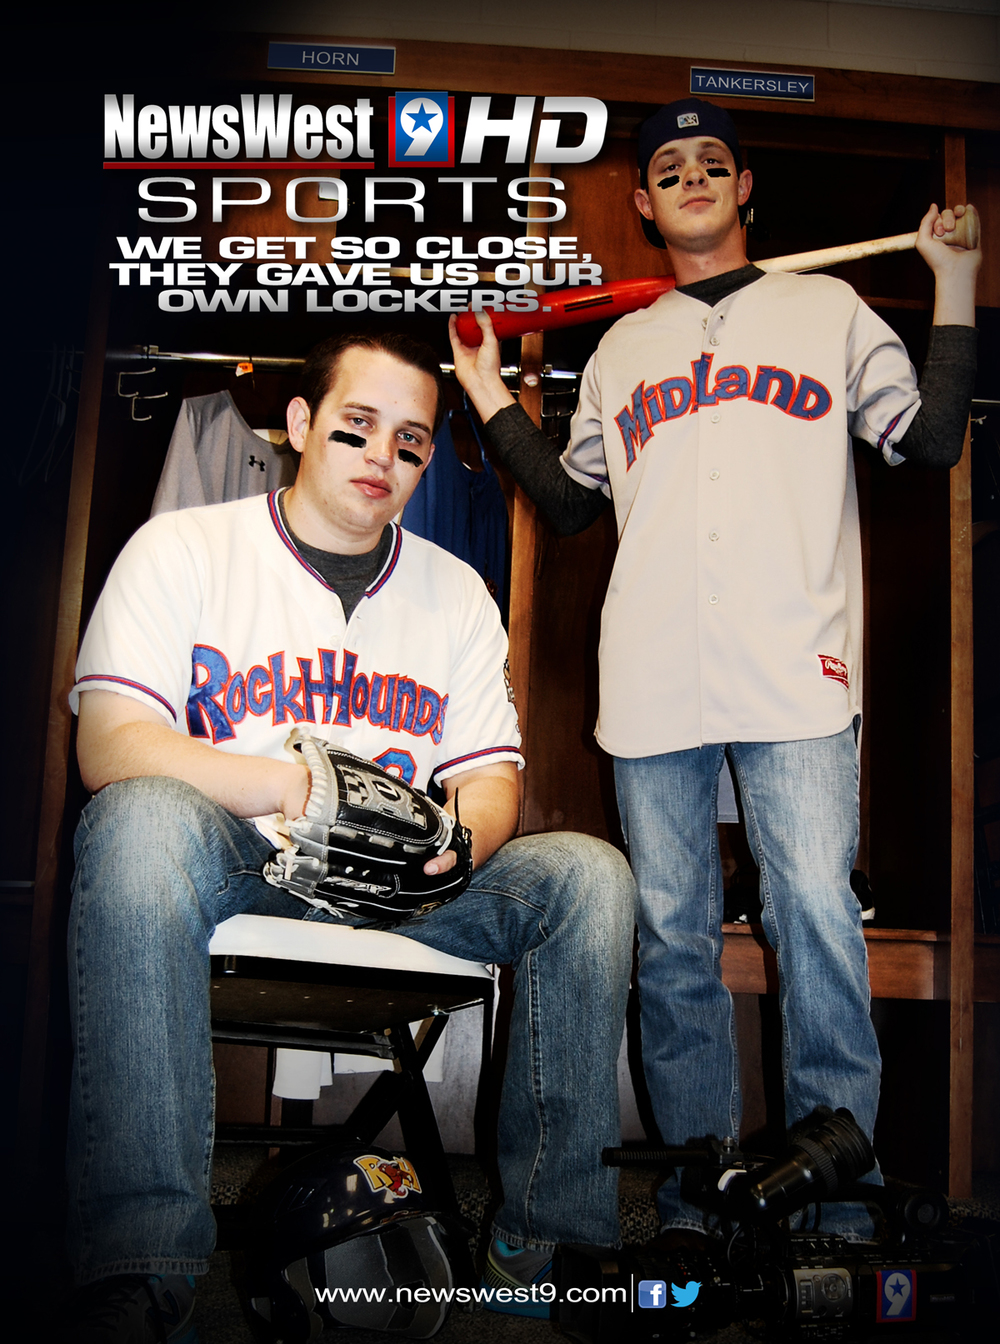 NW9 Sports Ad ROCKHOUNDS 2013 scaled.jpg